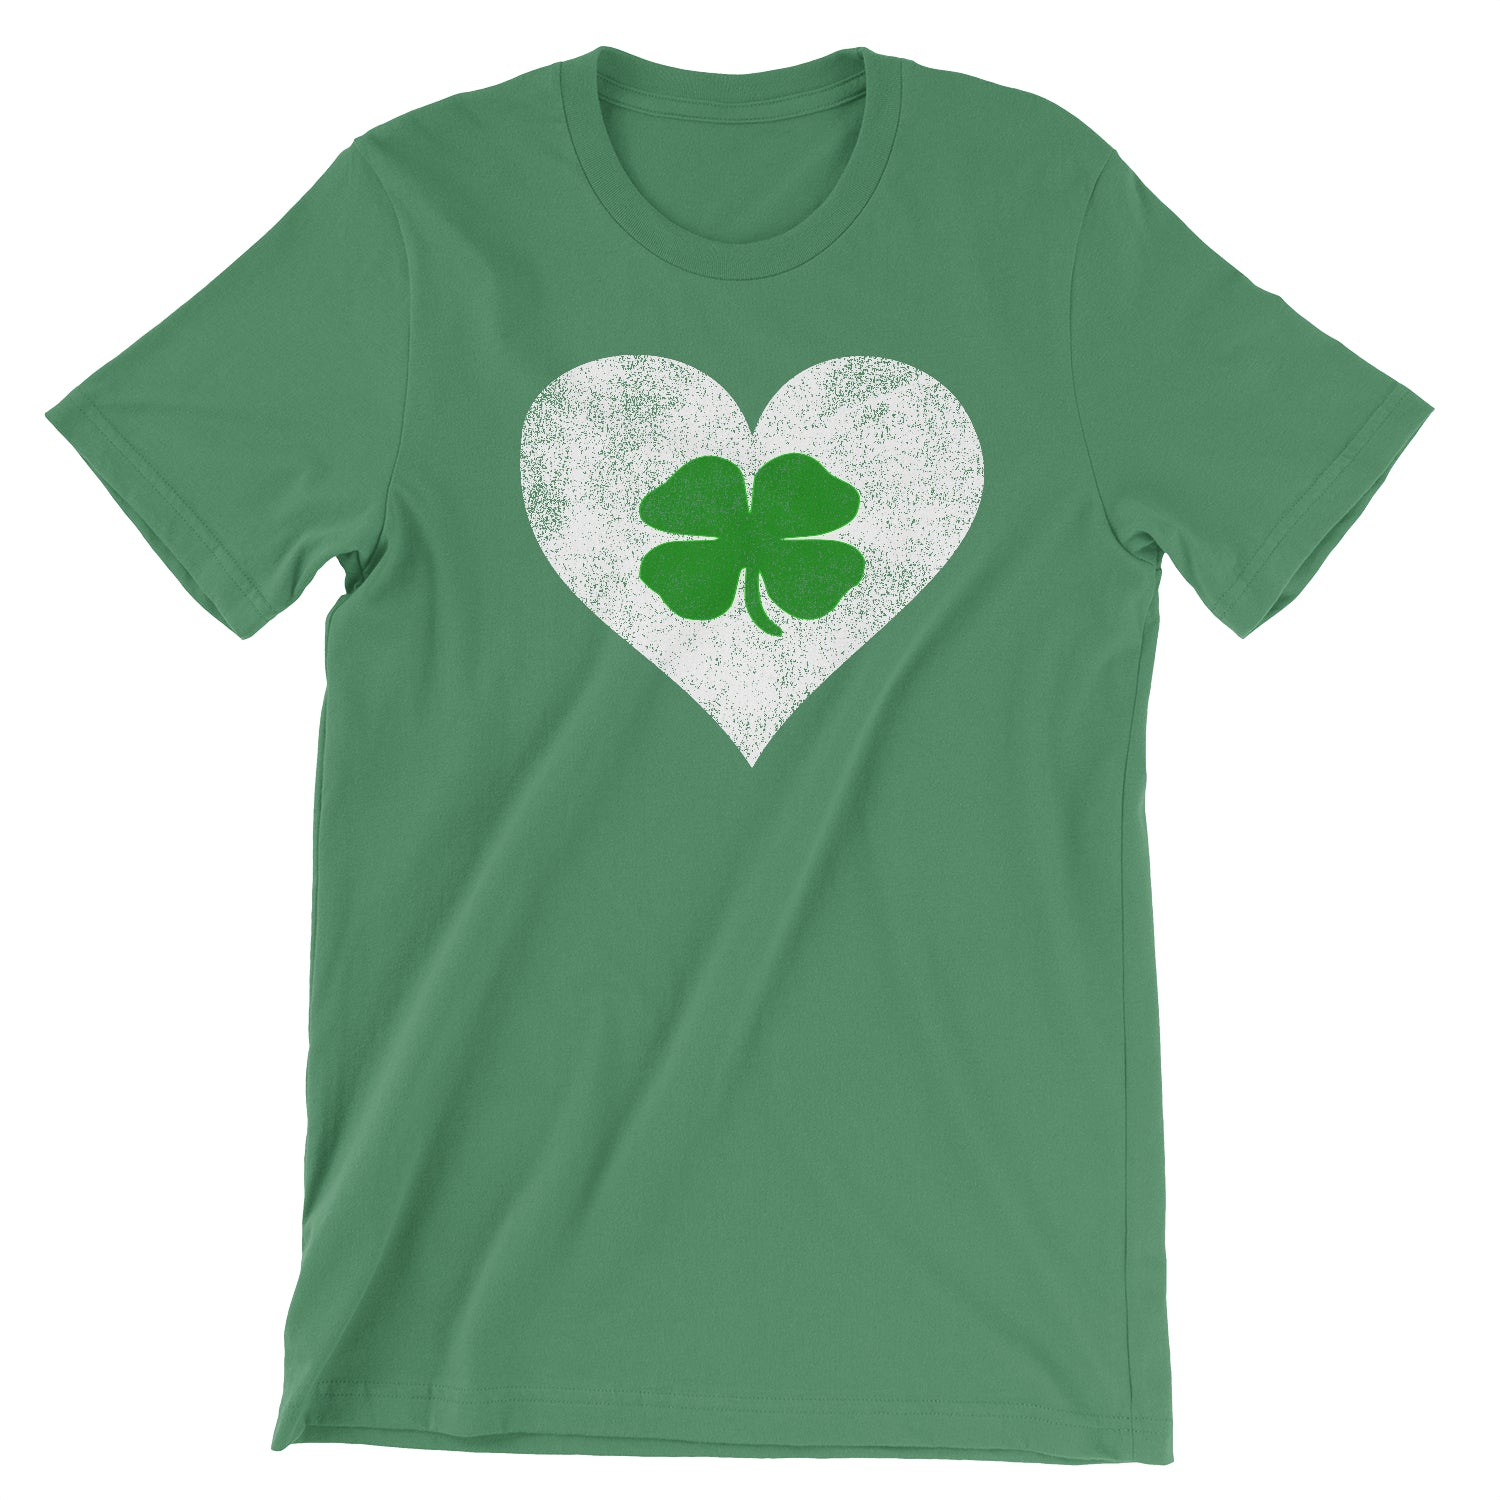 Irish Love Unisex Jersey Short Sleeve Tee